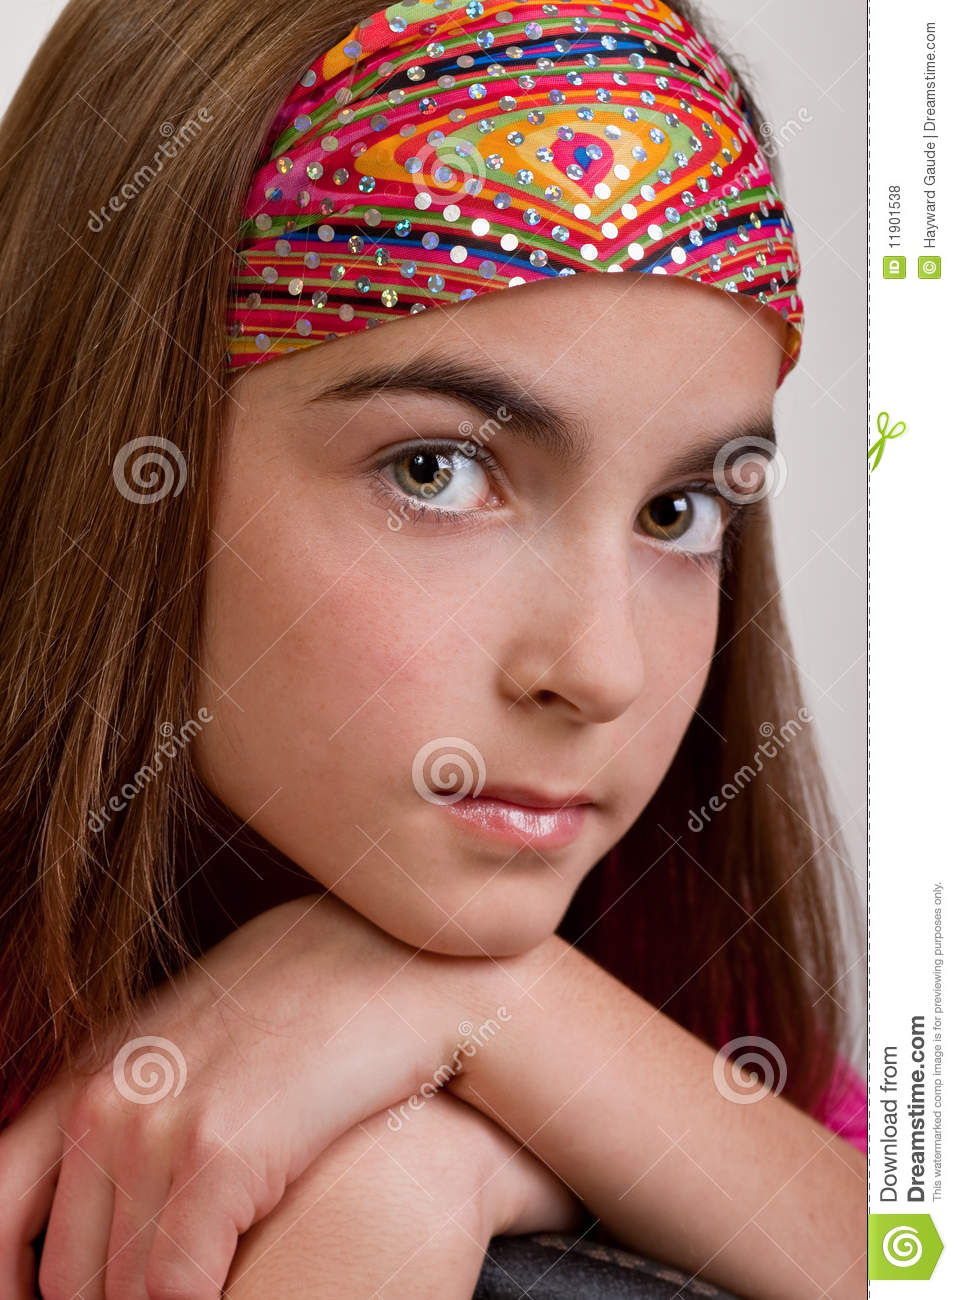 Closeup of young pre-teen girl with retro headband.